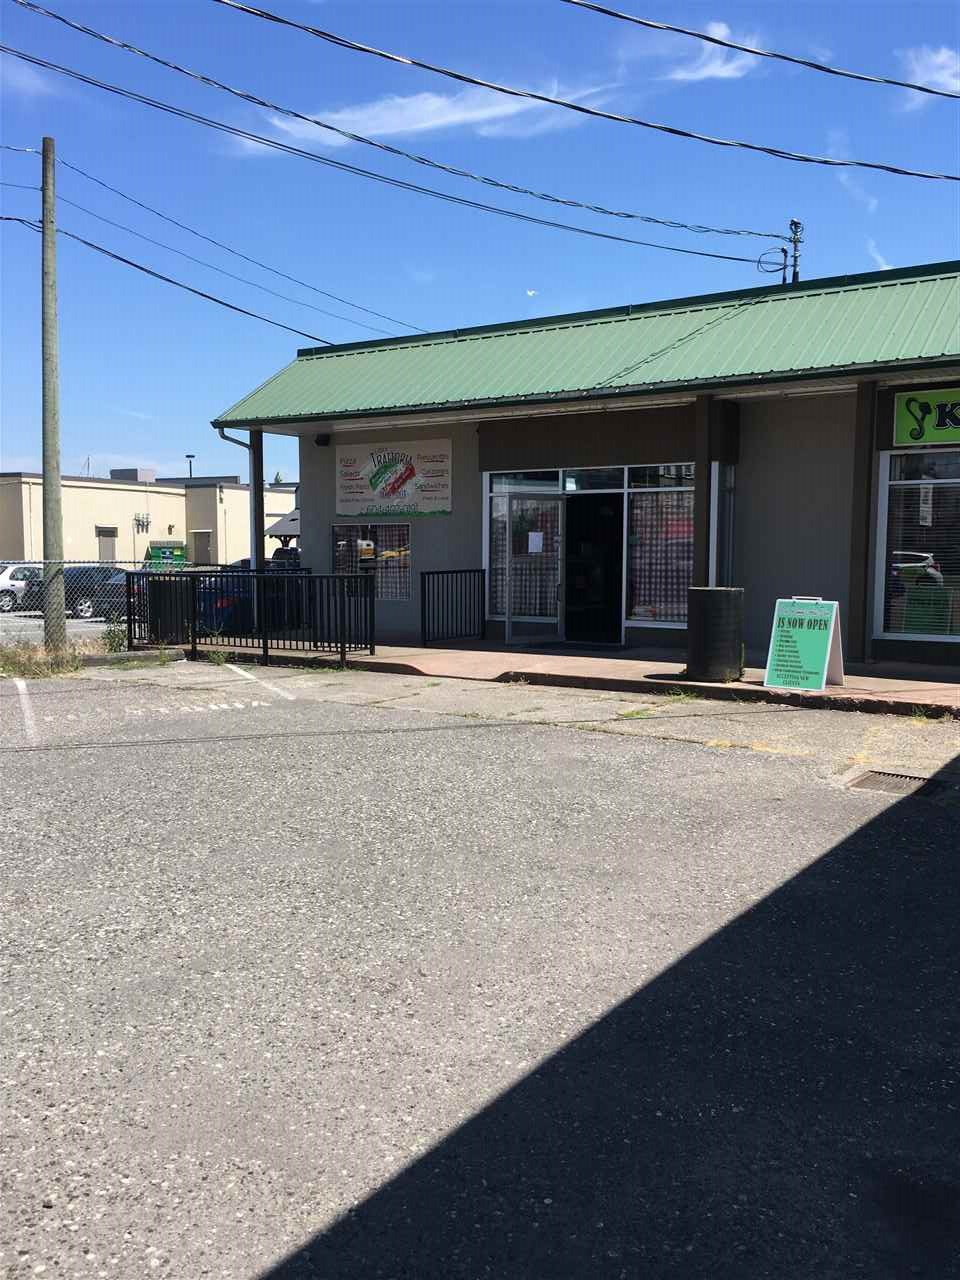 Great opportunity near downtown Chilliwack! Previously an Italian restaurant, now available for your next business venture. High traffic strip mall on Yale Road in Chilliwack. Space available for fast food, pizza, office and retail uses. Located across from Tim Hortons, KFC, close to intersection of Yale and Hodgins